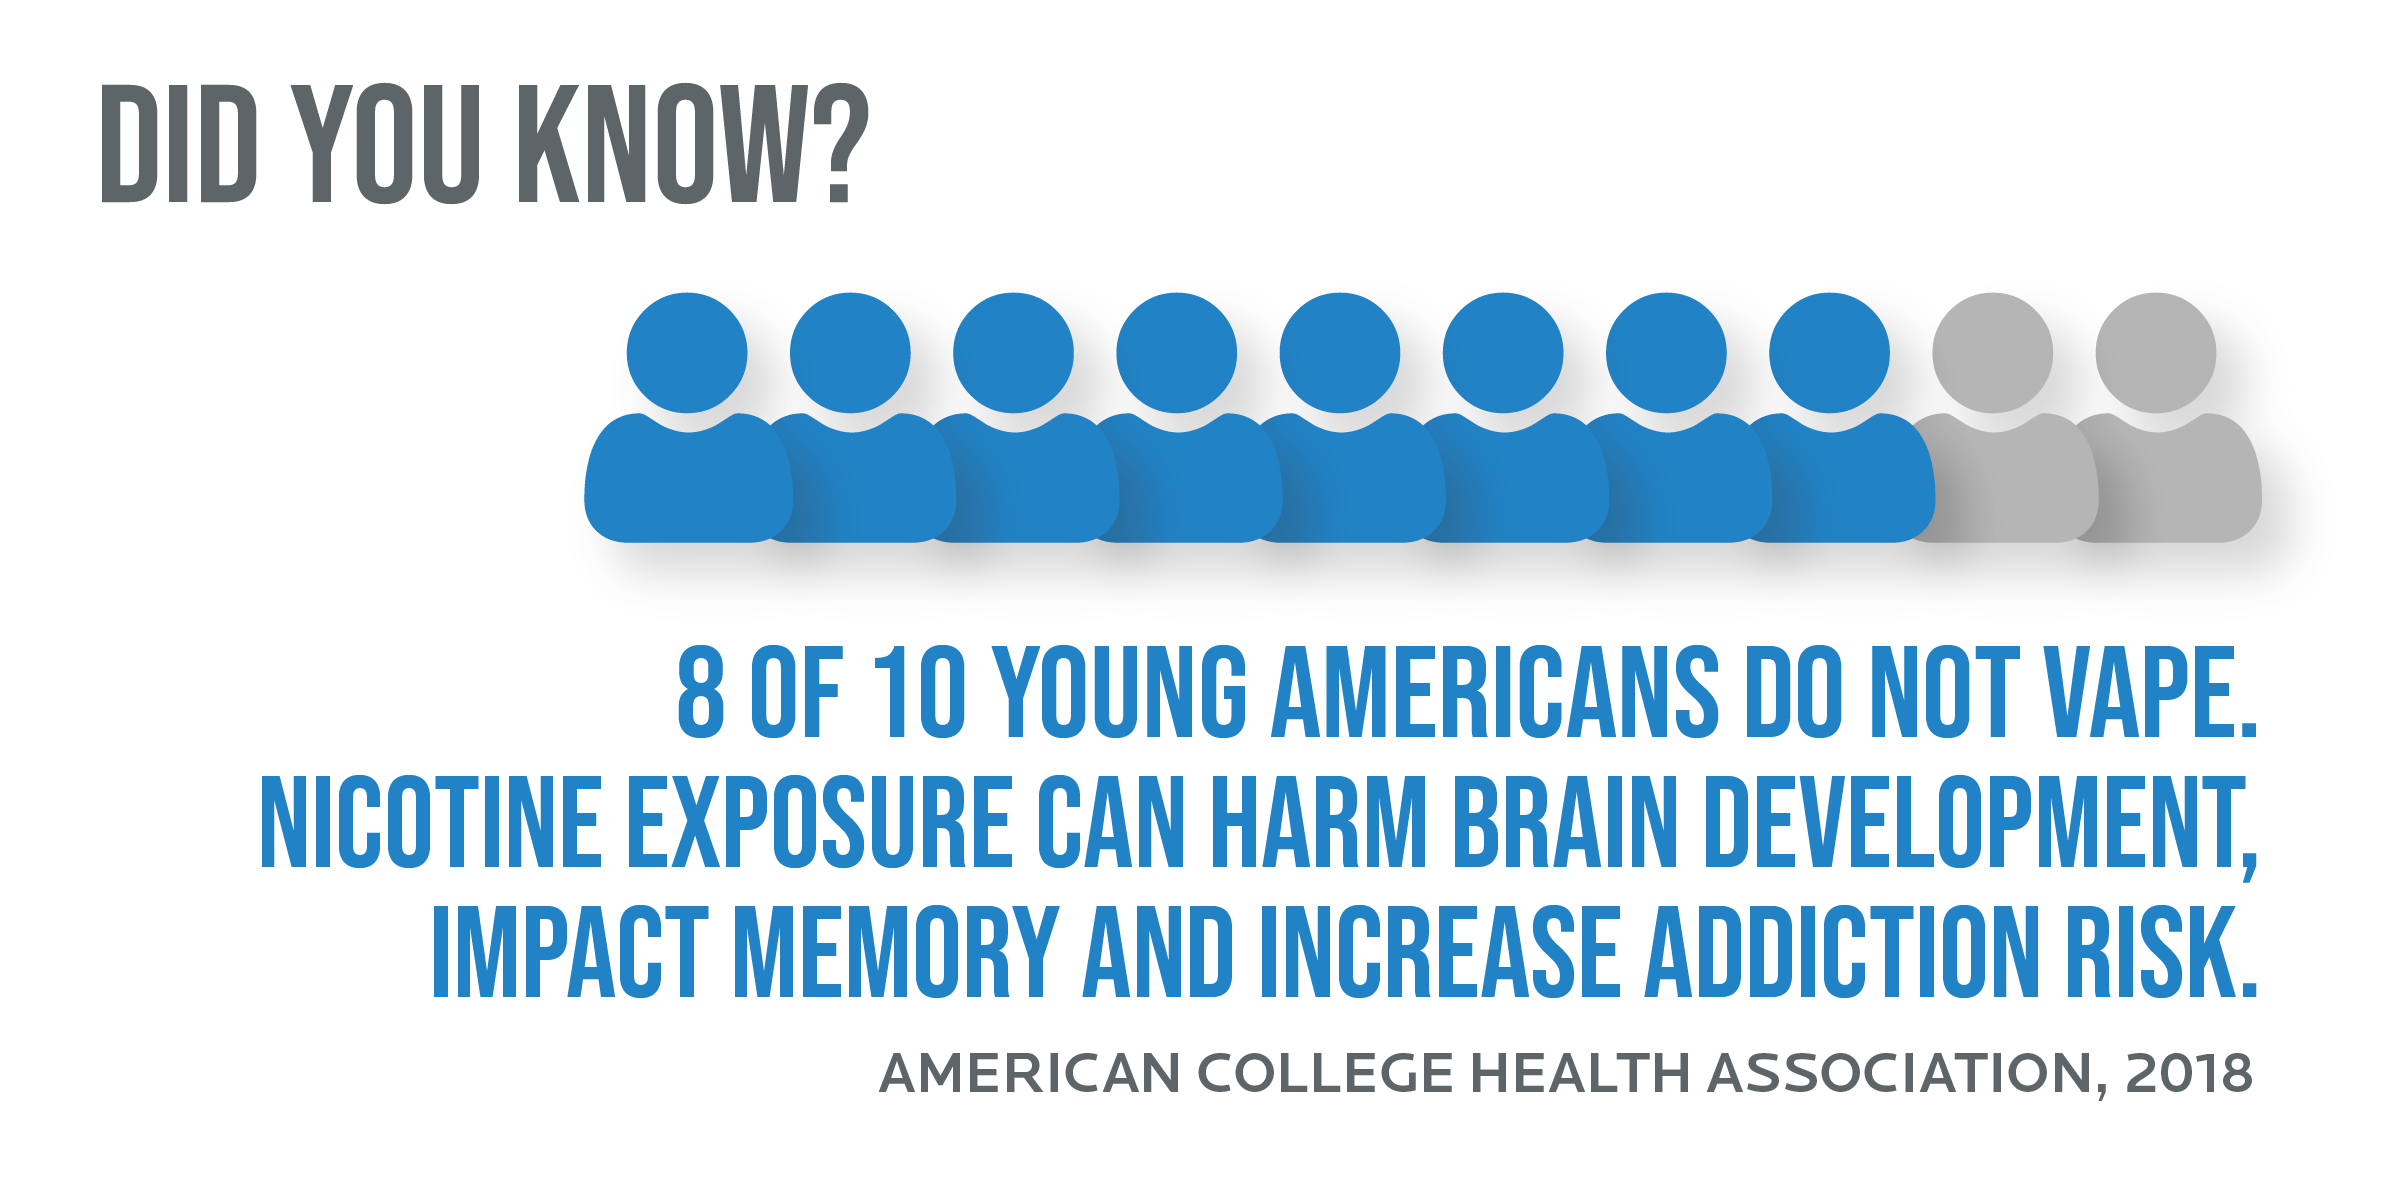 8 of 10 young Americans do not vape. Nicotine exposure can harm brain development, impact memory and increase addIction risk.